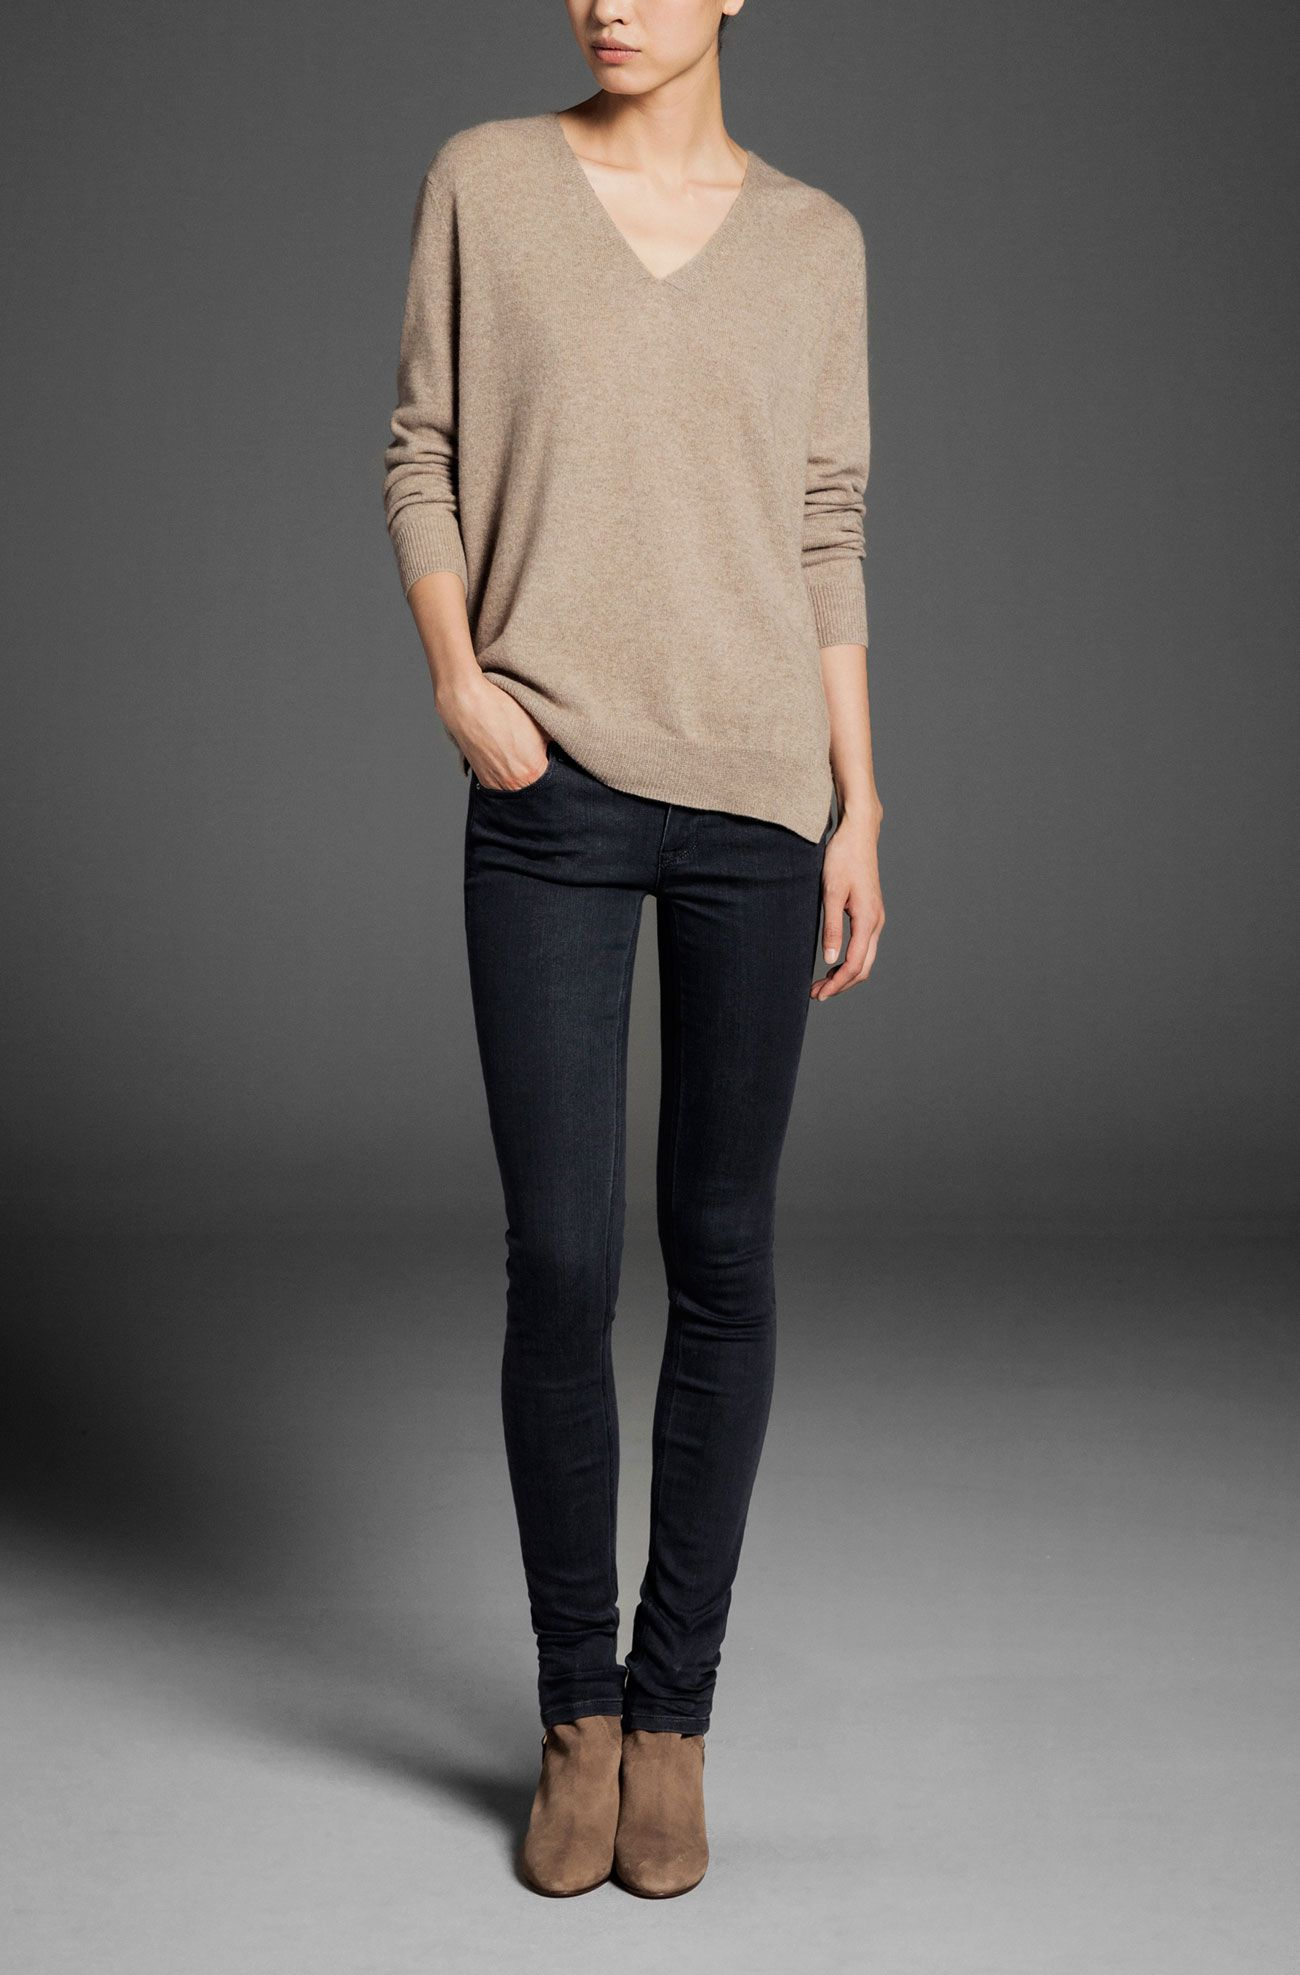 100% CASHMERE LONG SWEATER - Cashmere - WOMEN - Sweden | Outfits ...